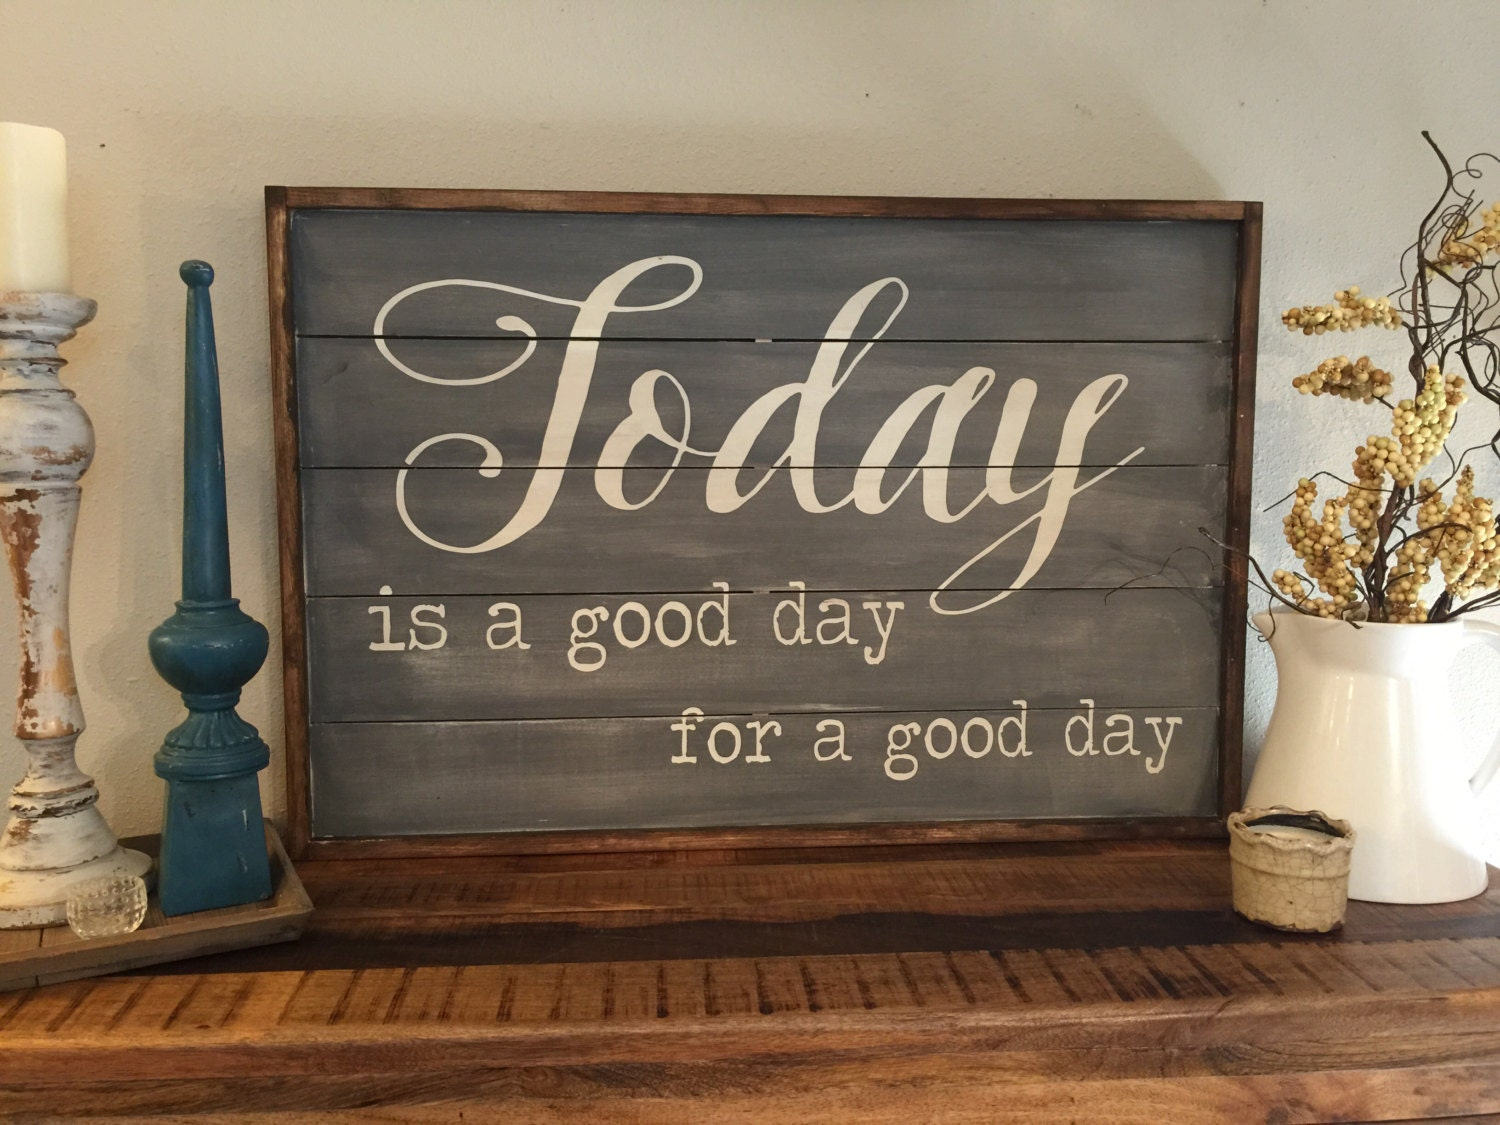 Today Is A Good Day For A Good Day Wood Sign By Kspeddler